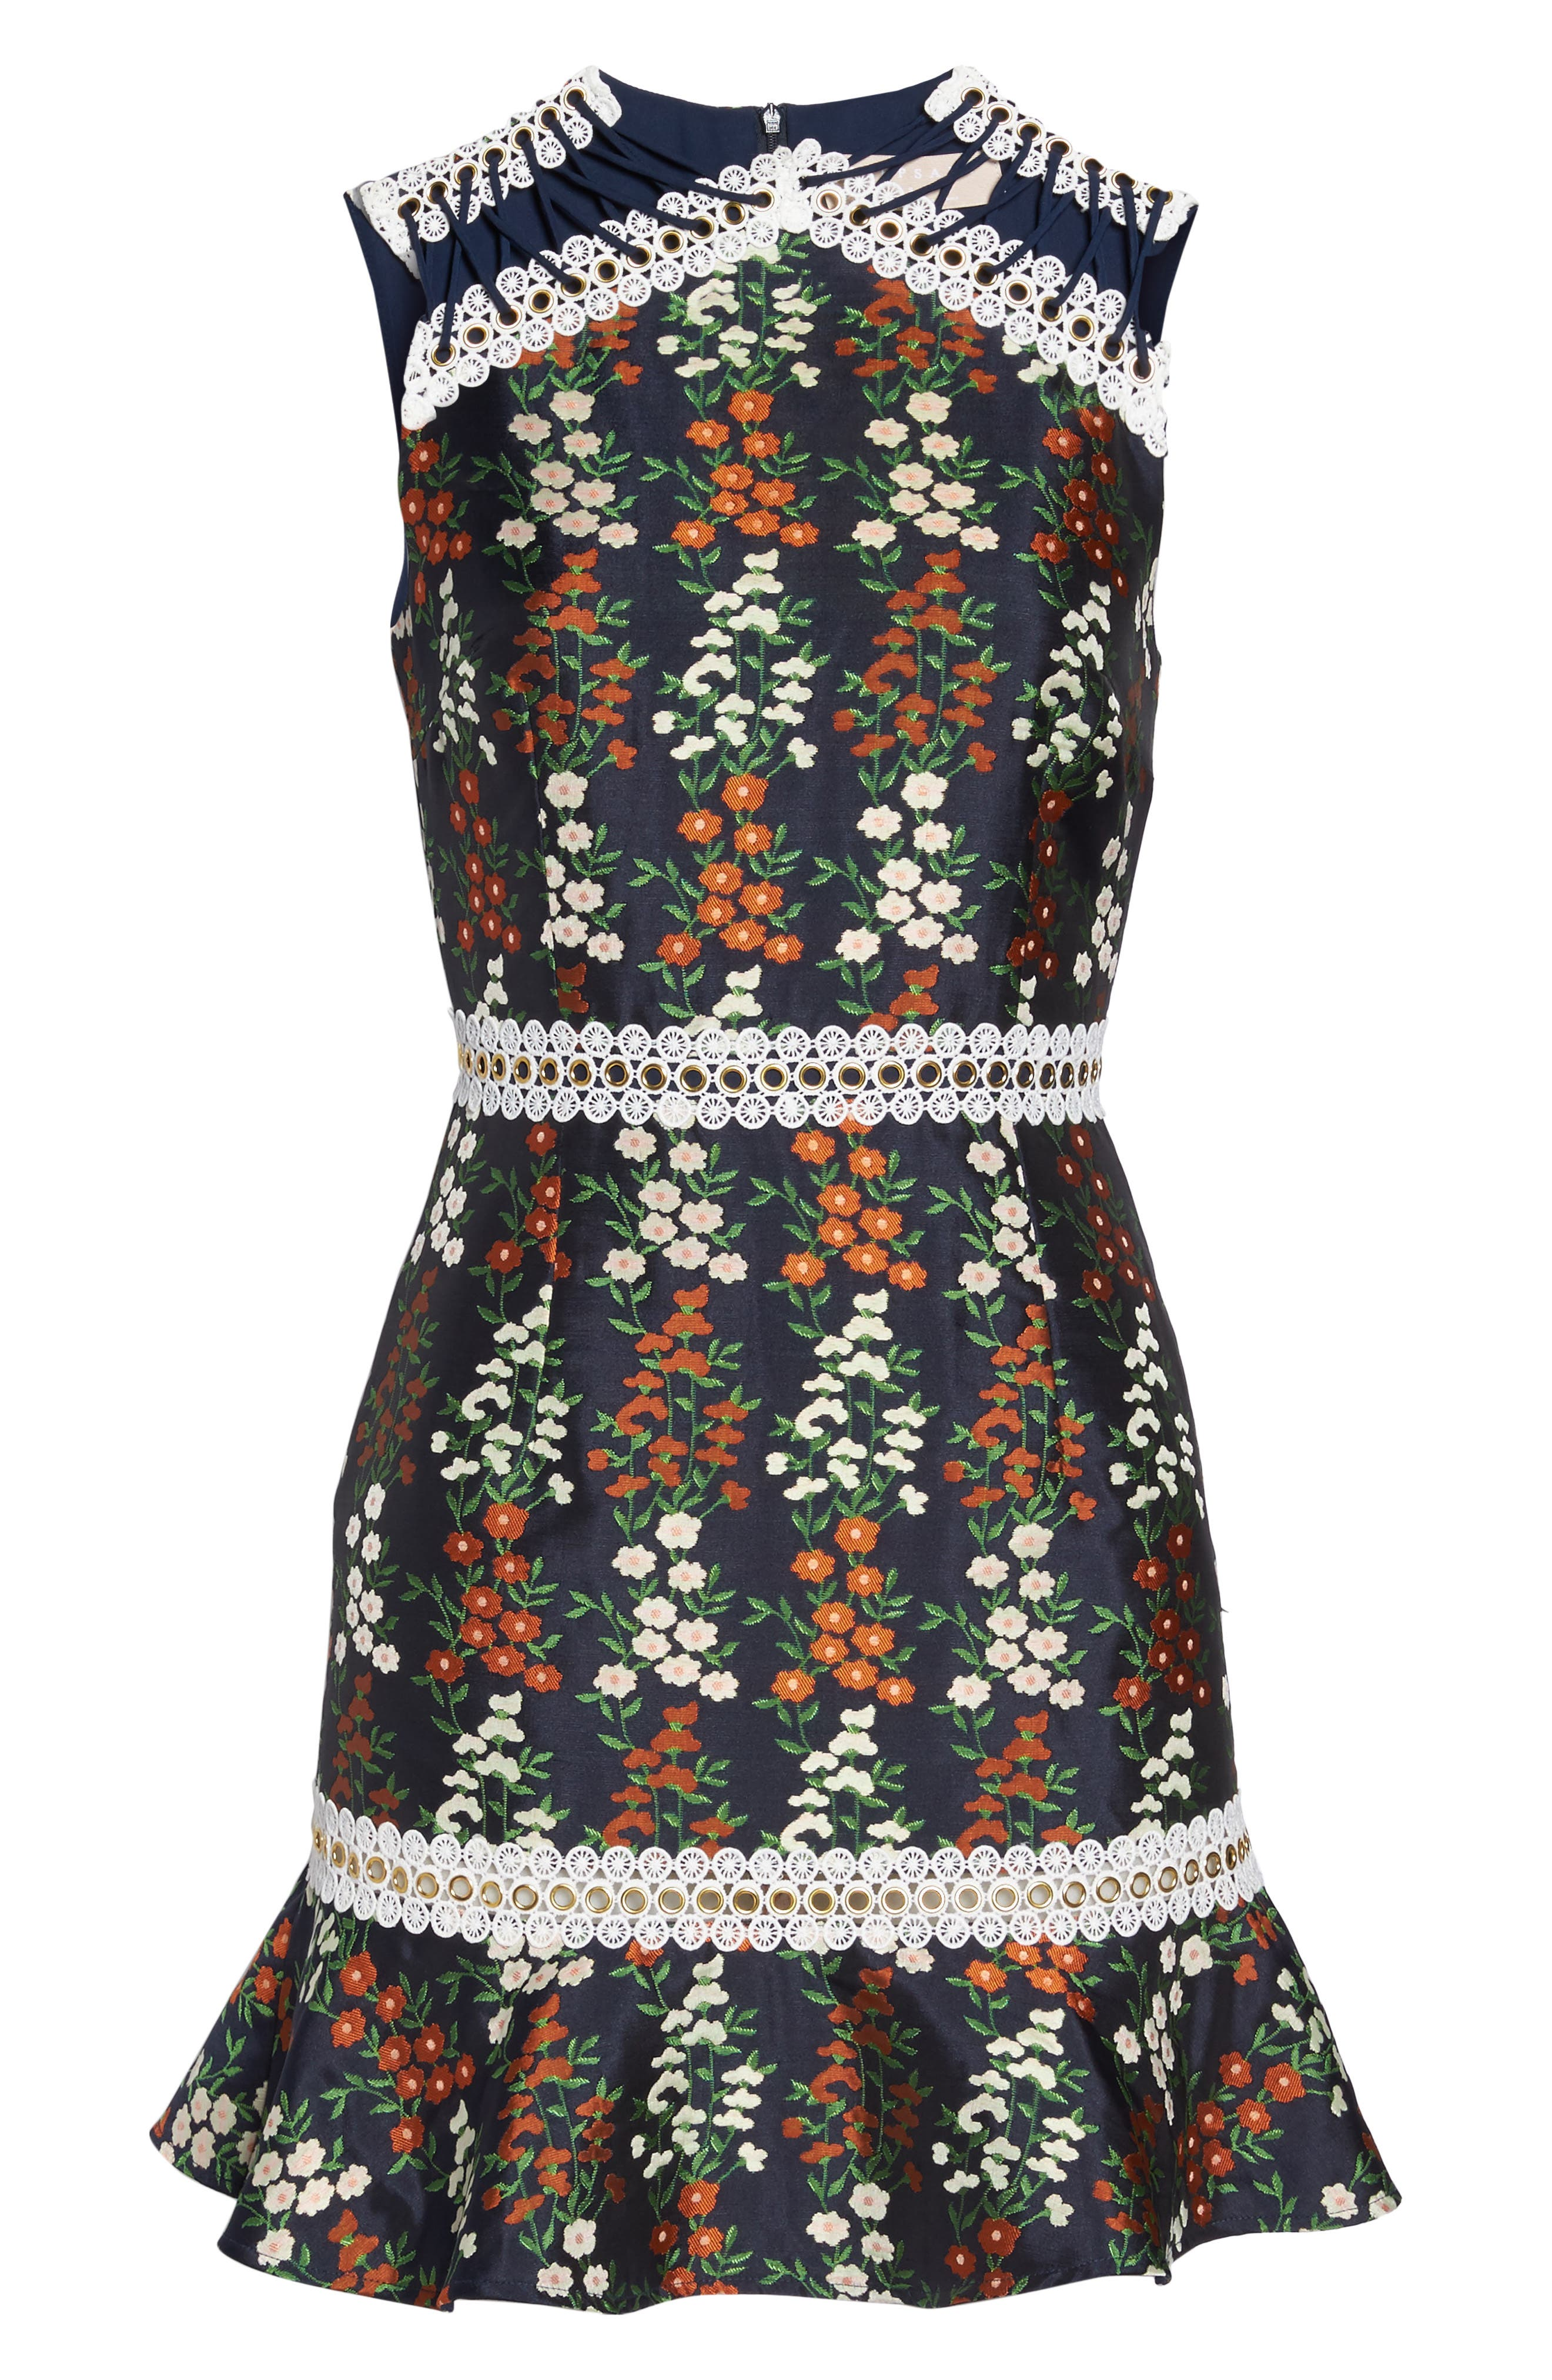 Faithful Floral Lace-Up Shoulder Dress,                             Alternate thumbnail 6, color,                             Navy